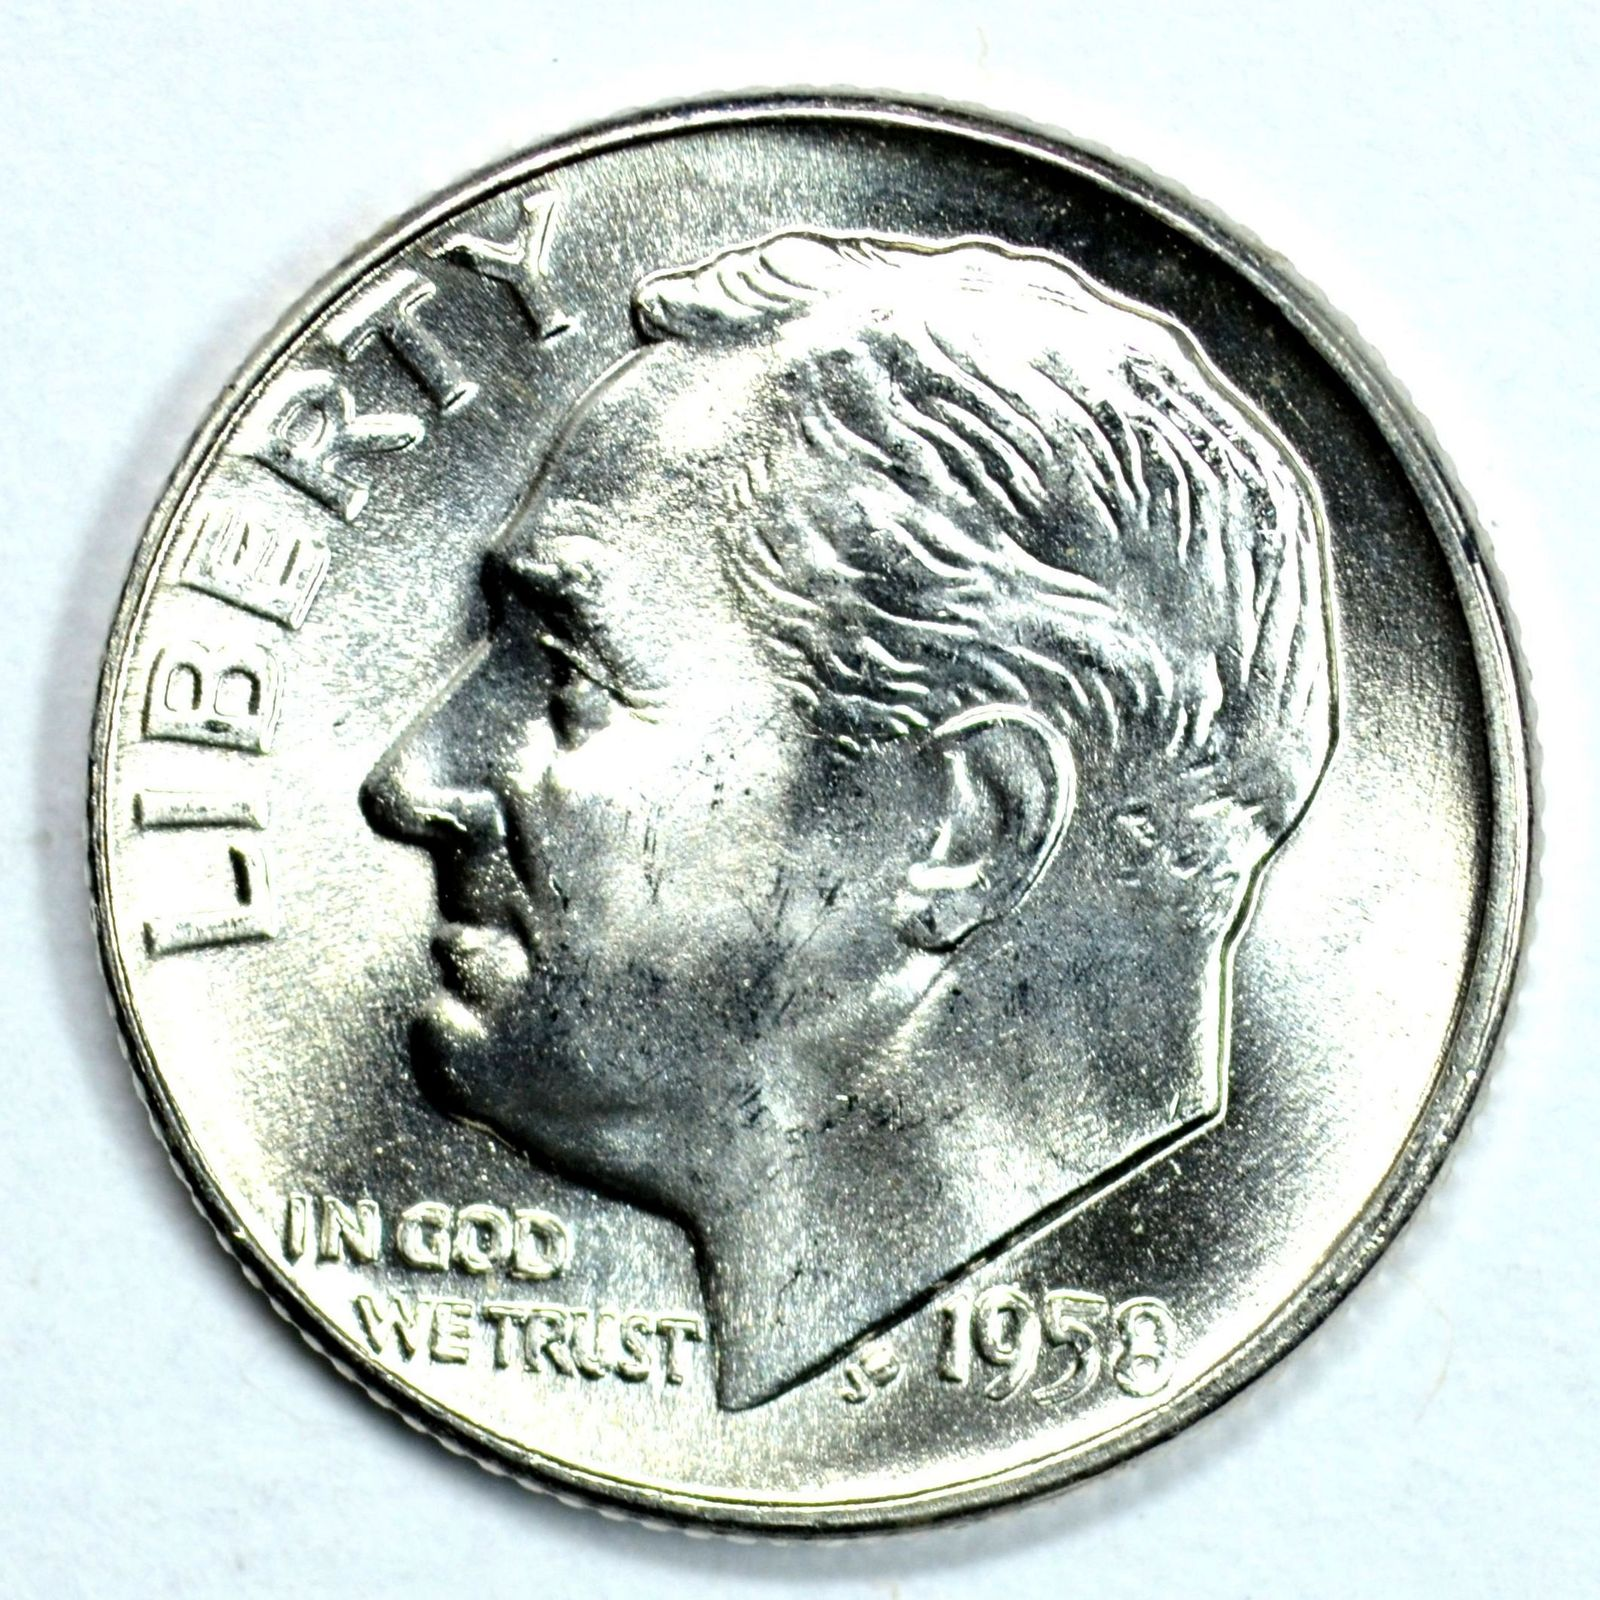 Primary image for 1958 D Roosevelt uncirculated silver dime BU